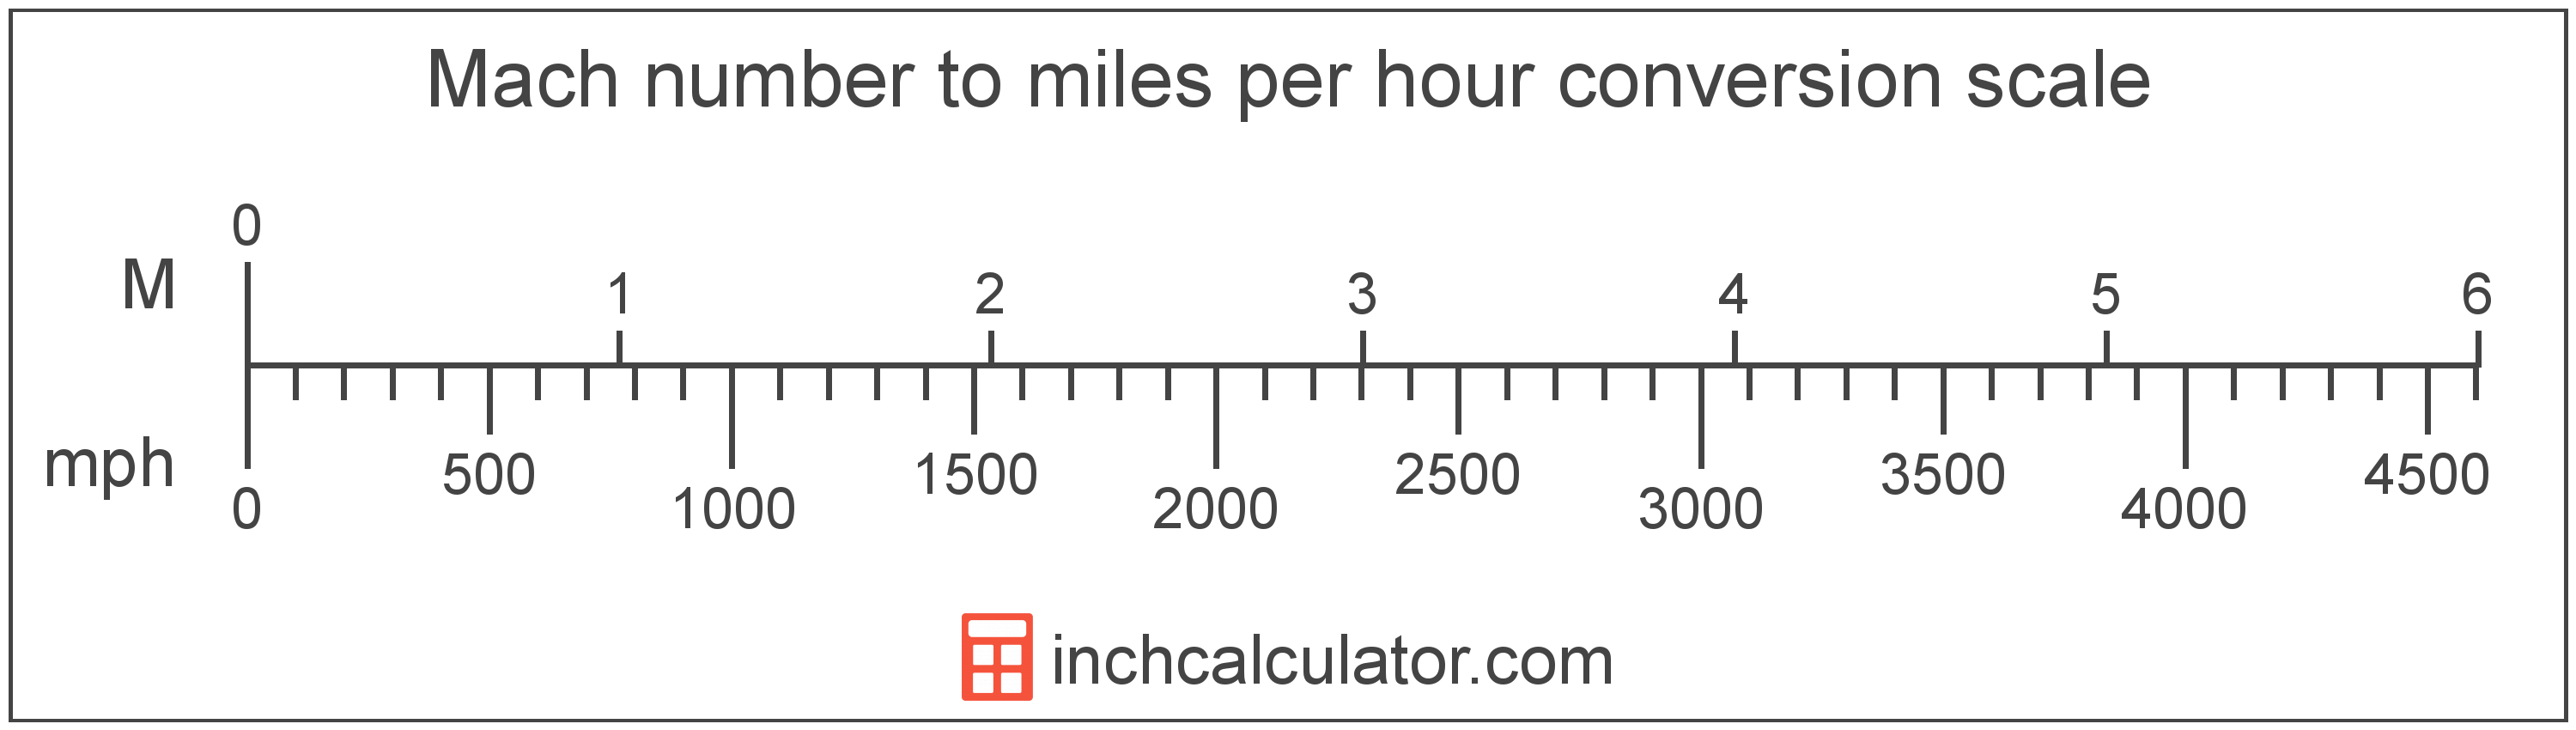 conversion scale showing miles per hour and equivalent Mach number speed values